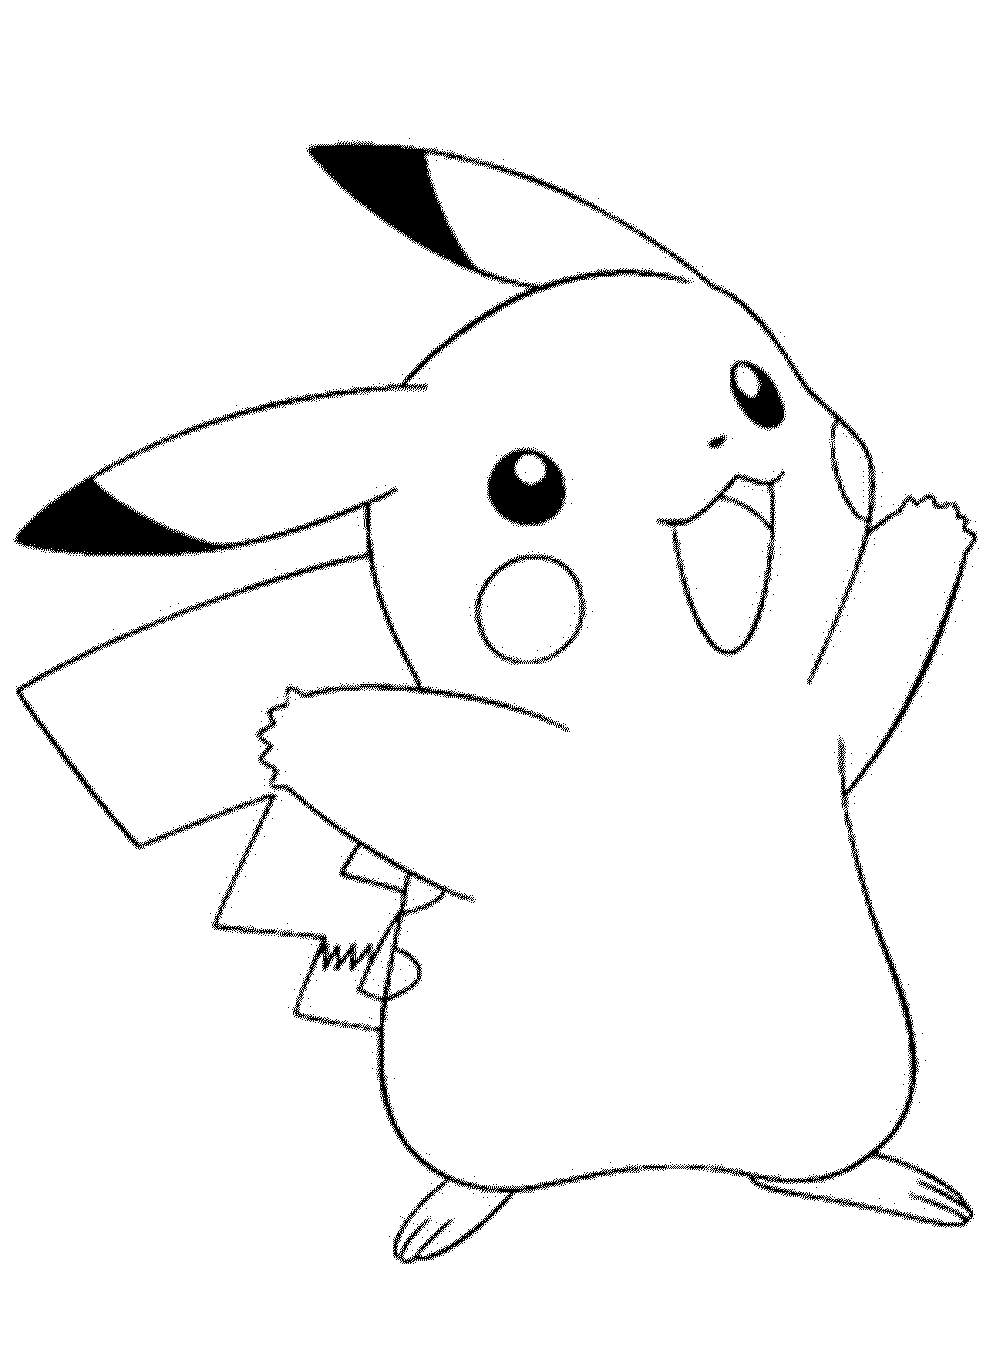 pokemon coloring pages free printable - photo#36